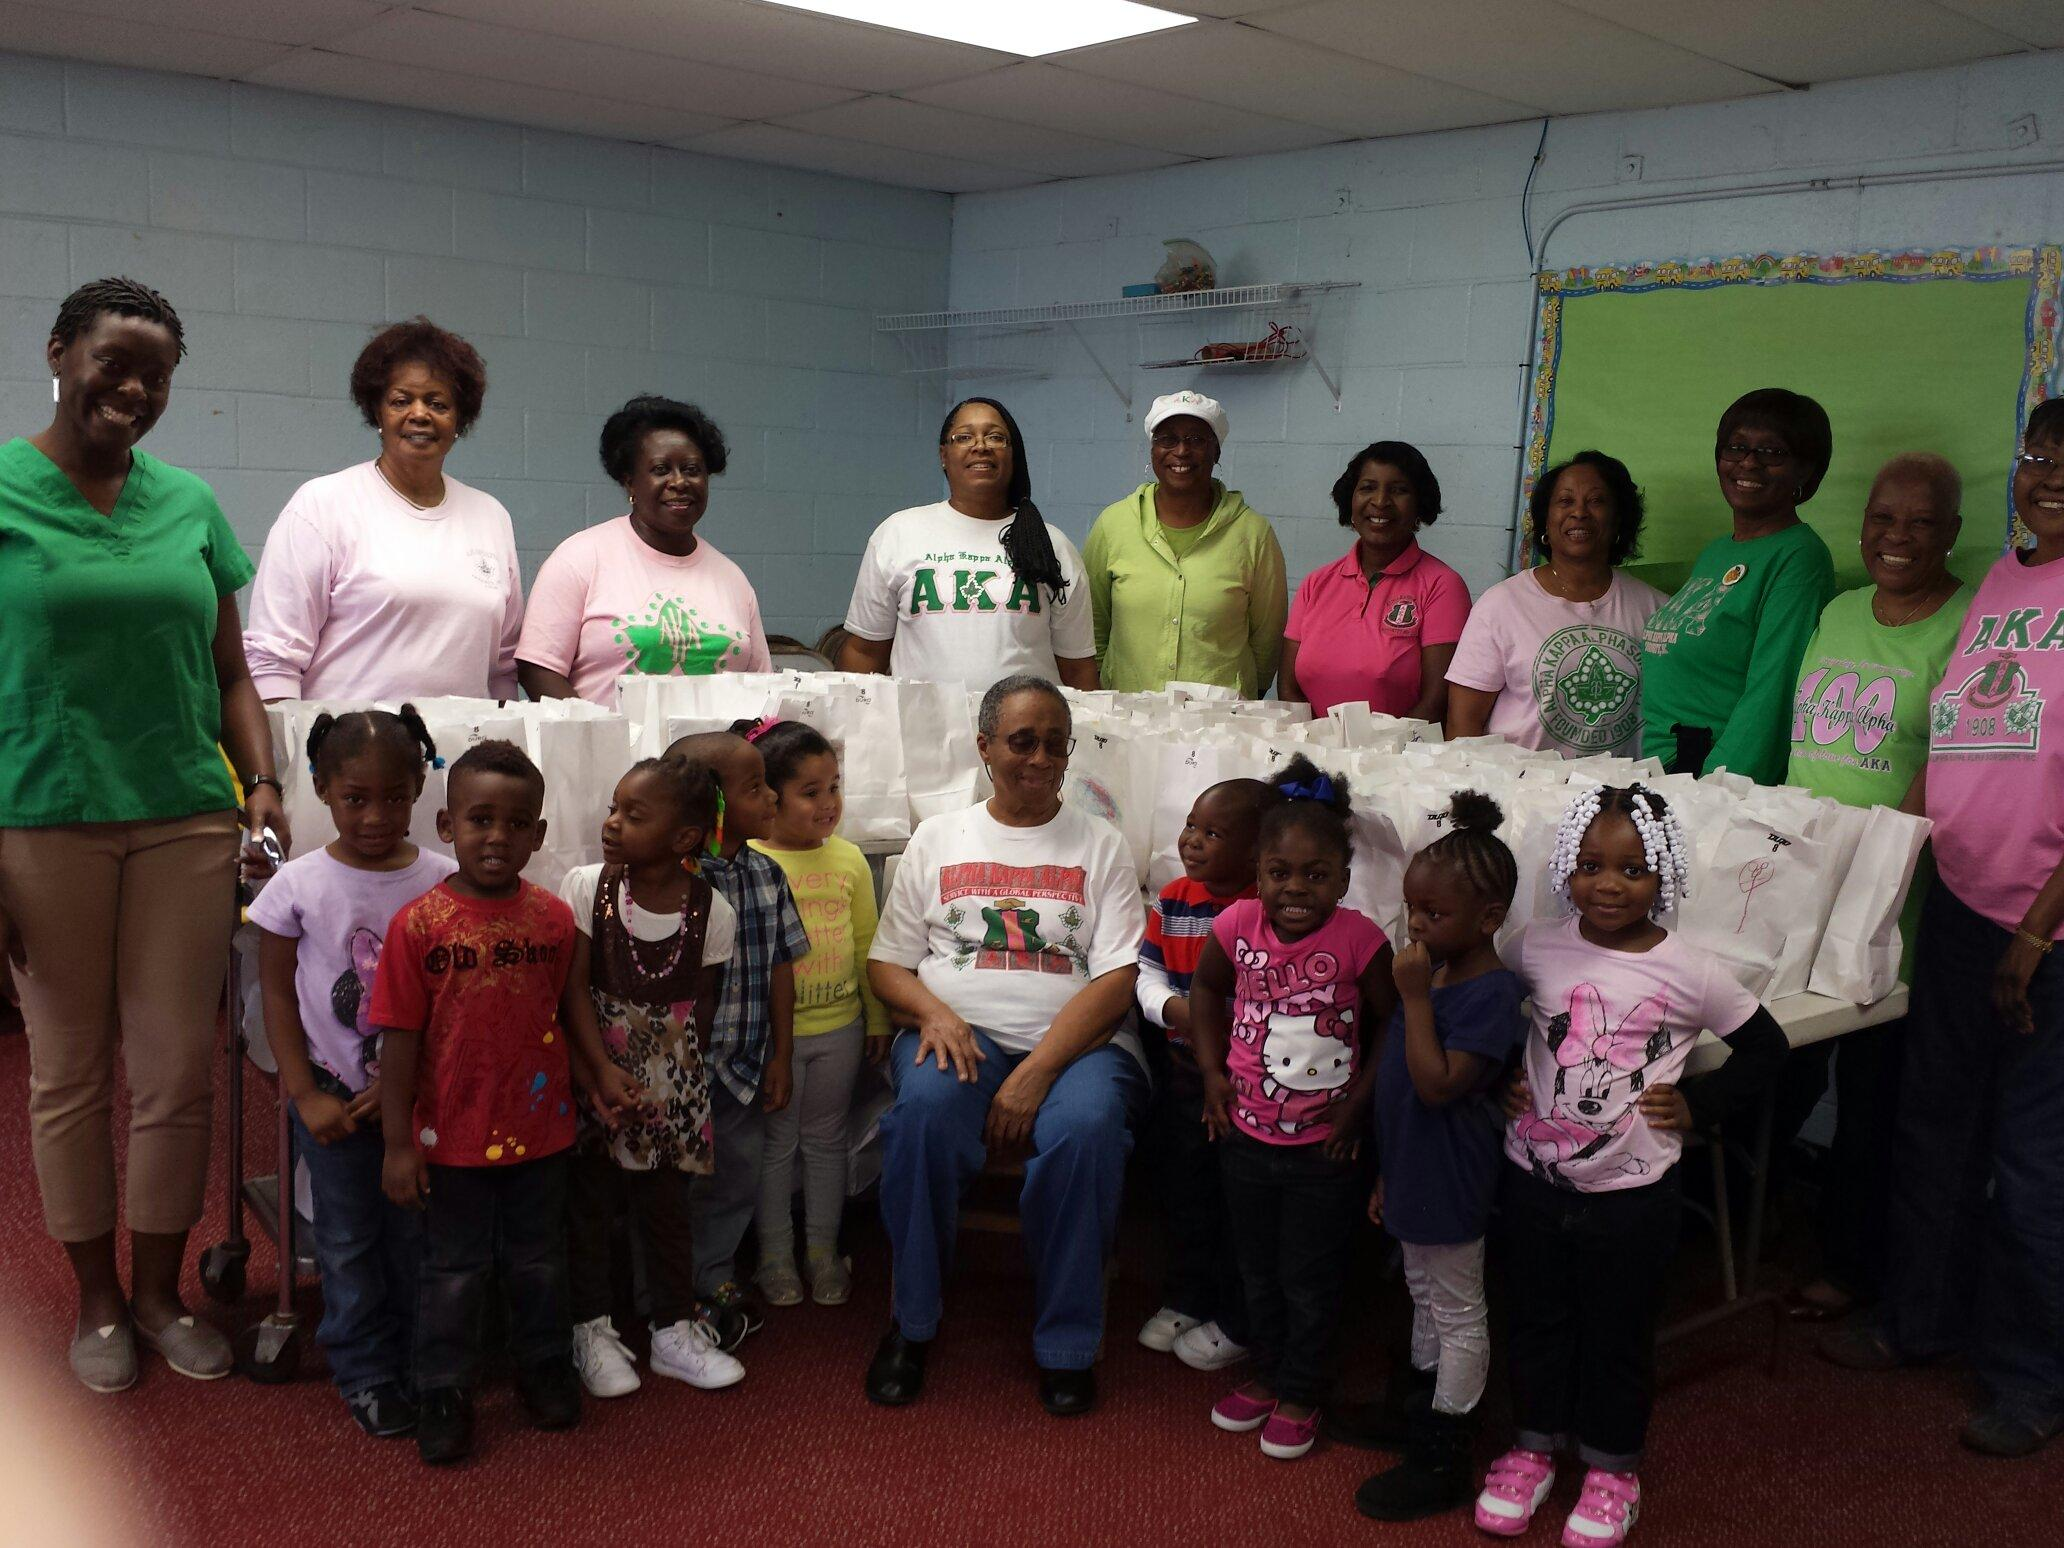 NPO at the Pre-K Center